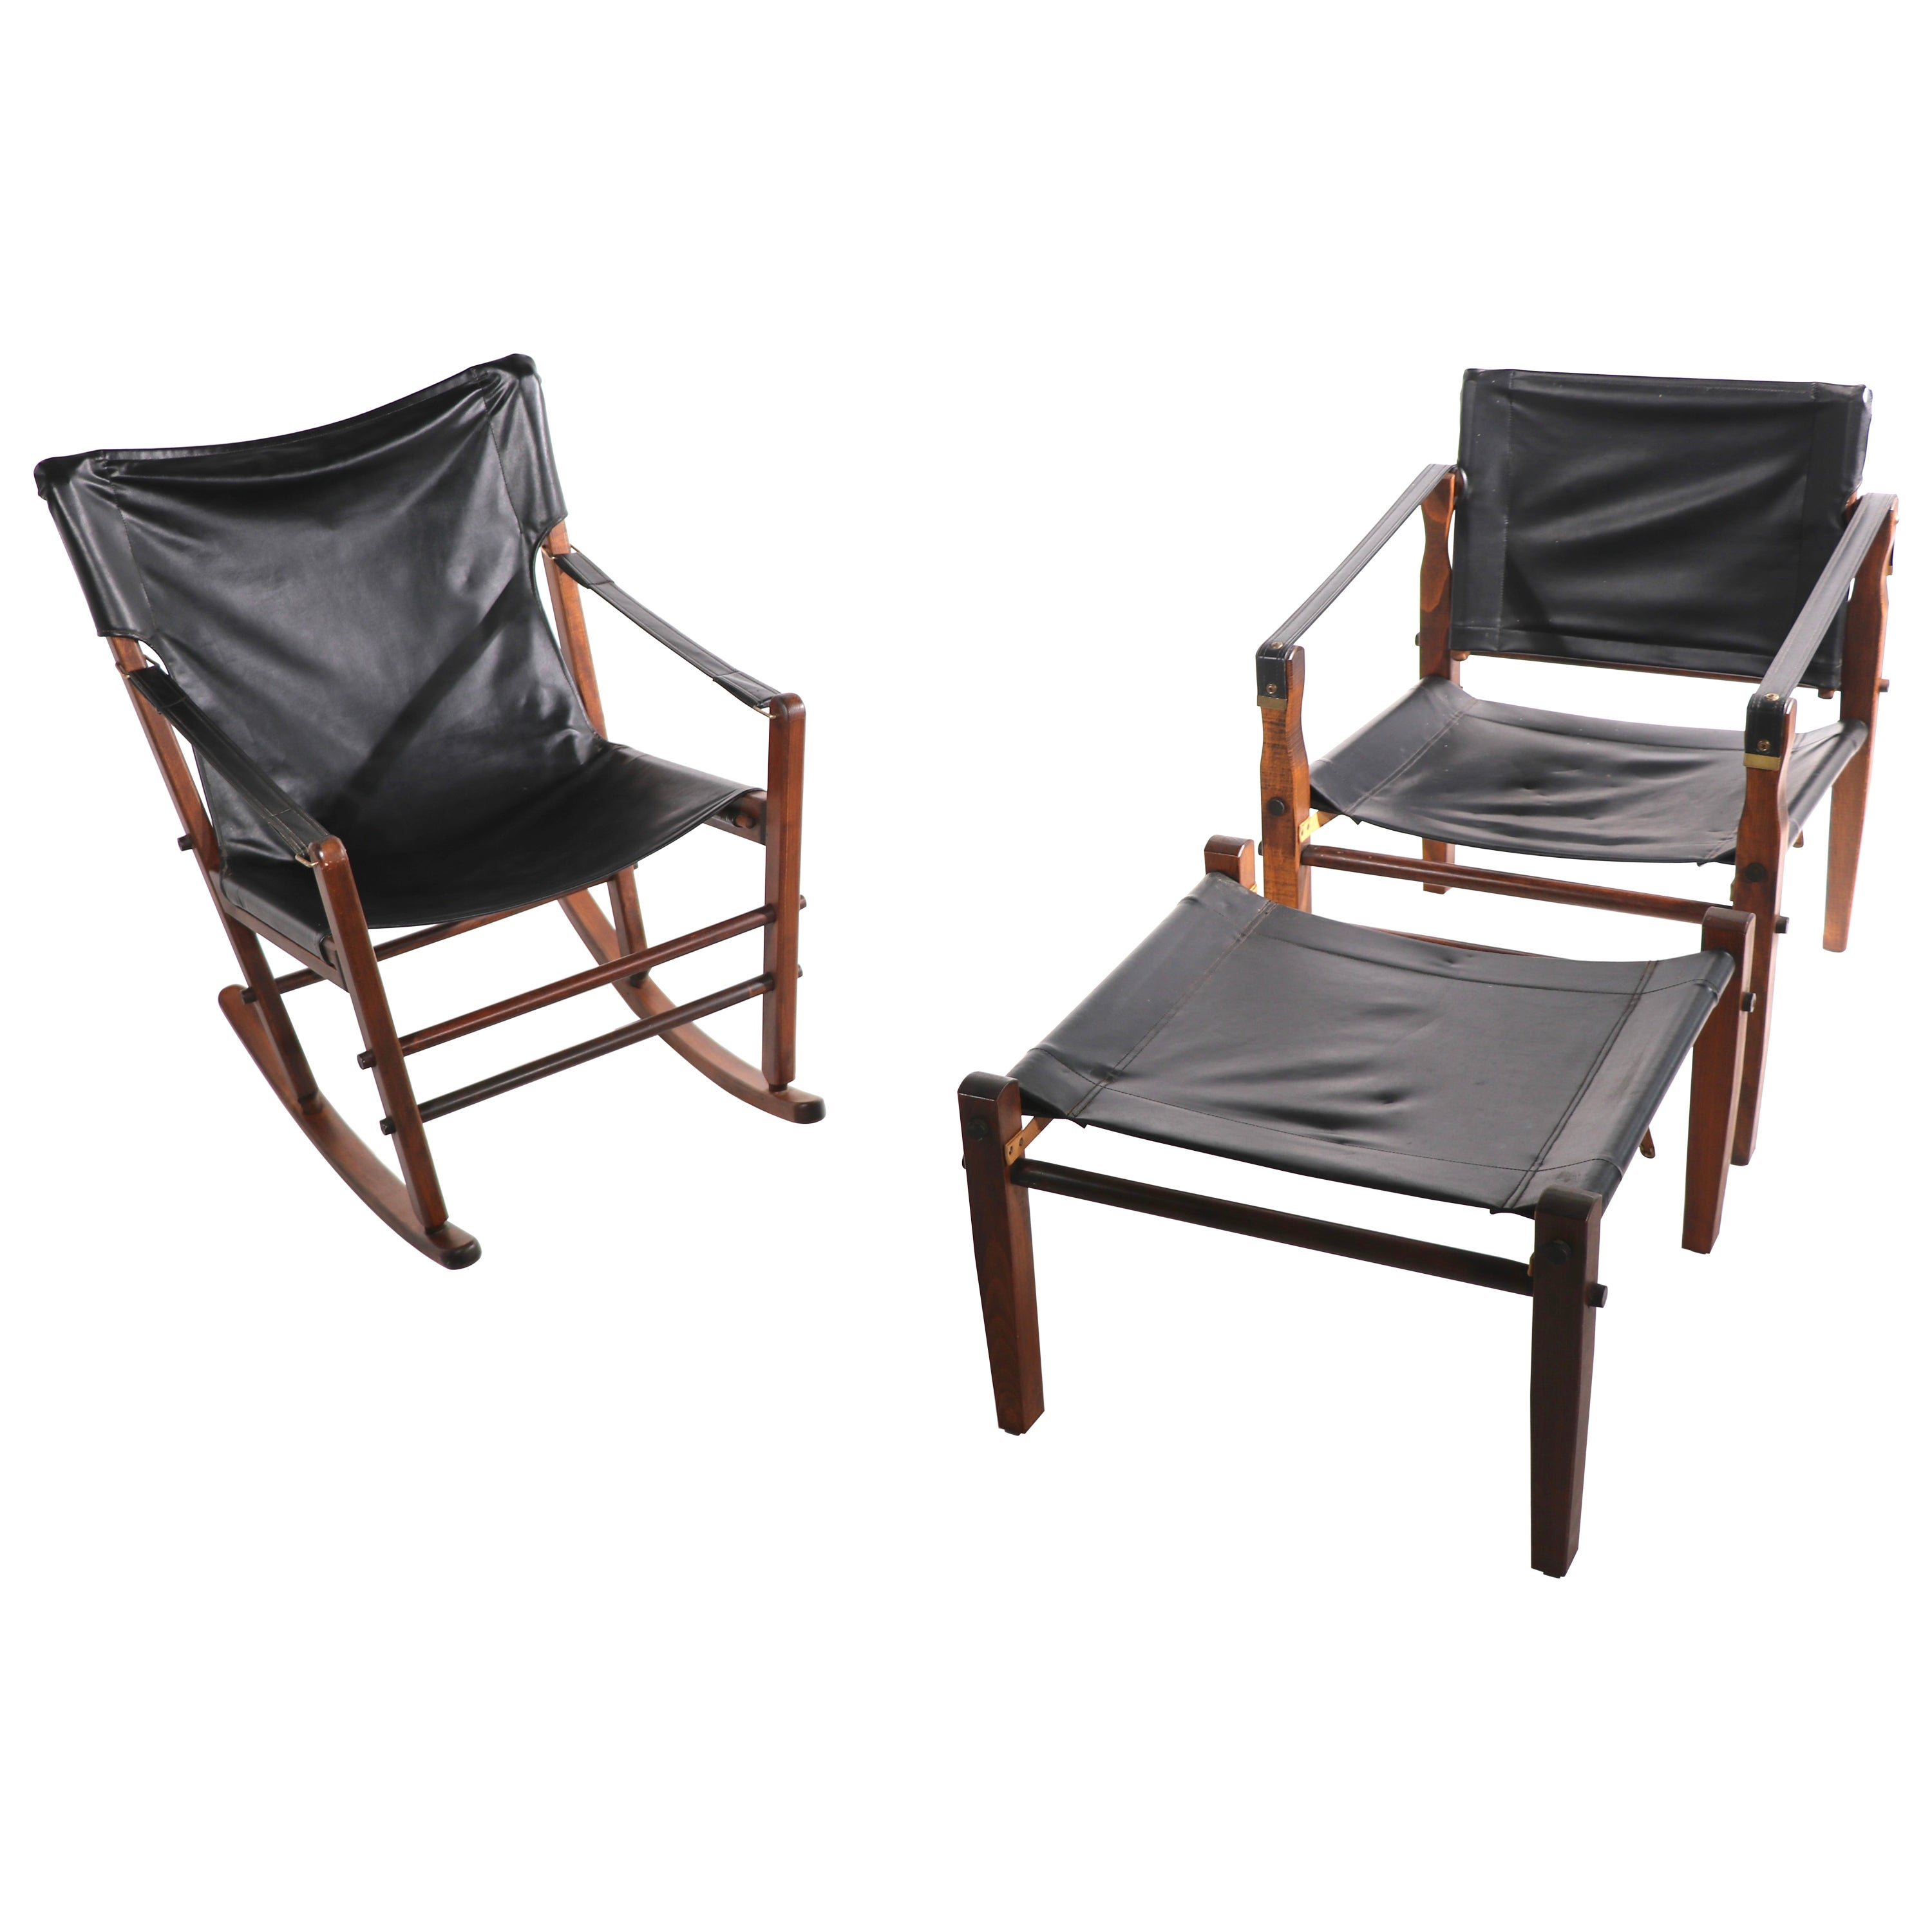 3 Pc. Suite Safari Chairs and Ottoman by Gold Metal Furniture Racine, Wisconsin